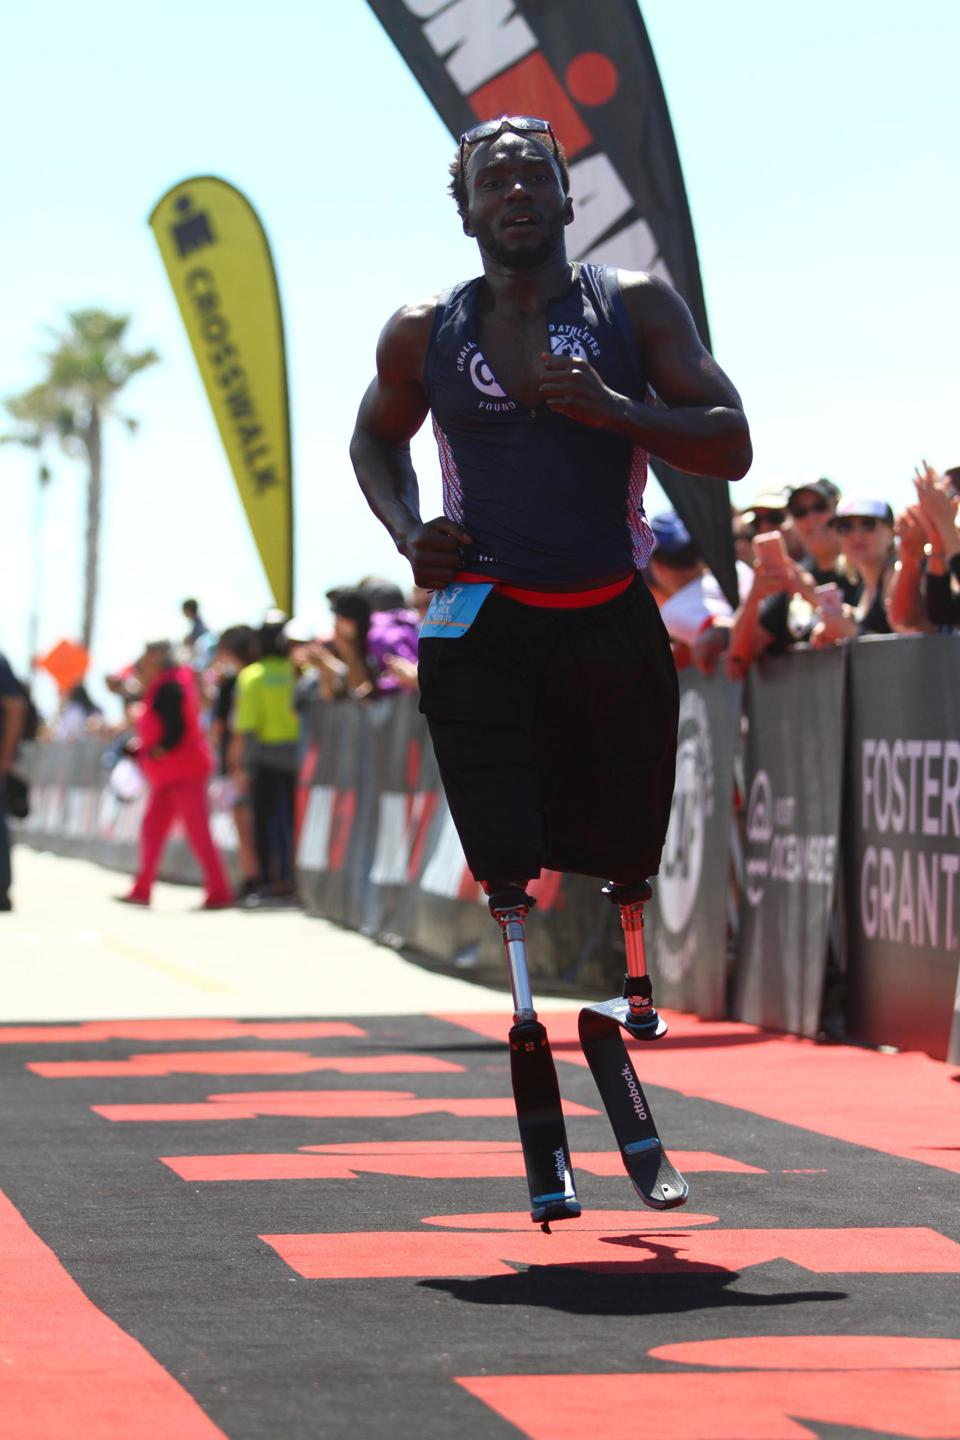 Roderick Sewell finishing the IRONMAN 70.3 Oceanside, in April 2019.